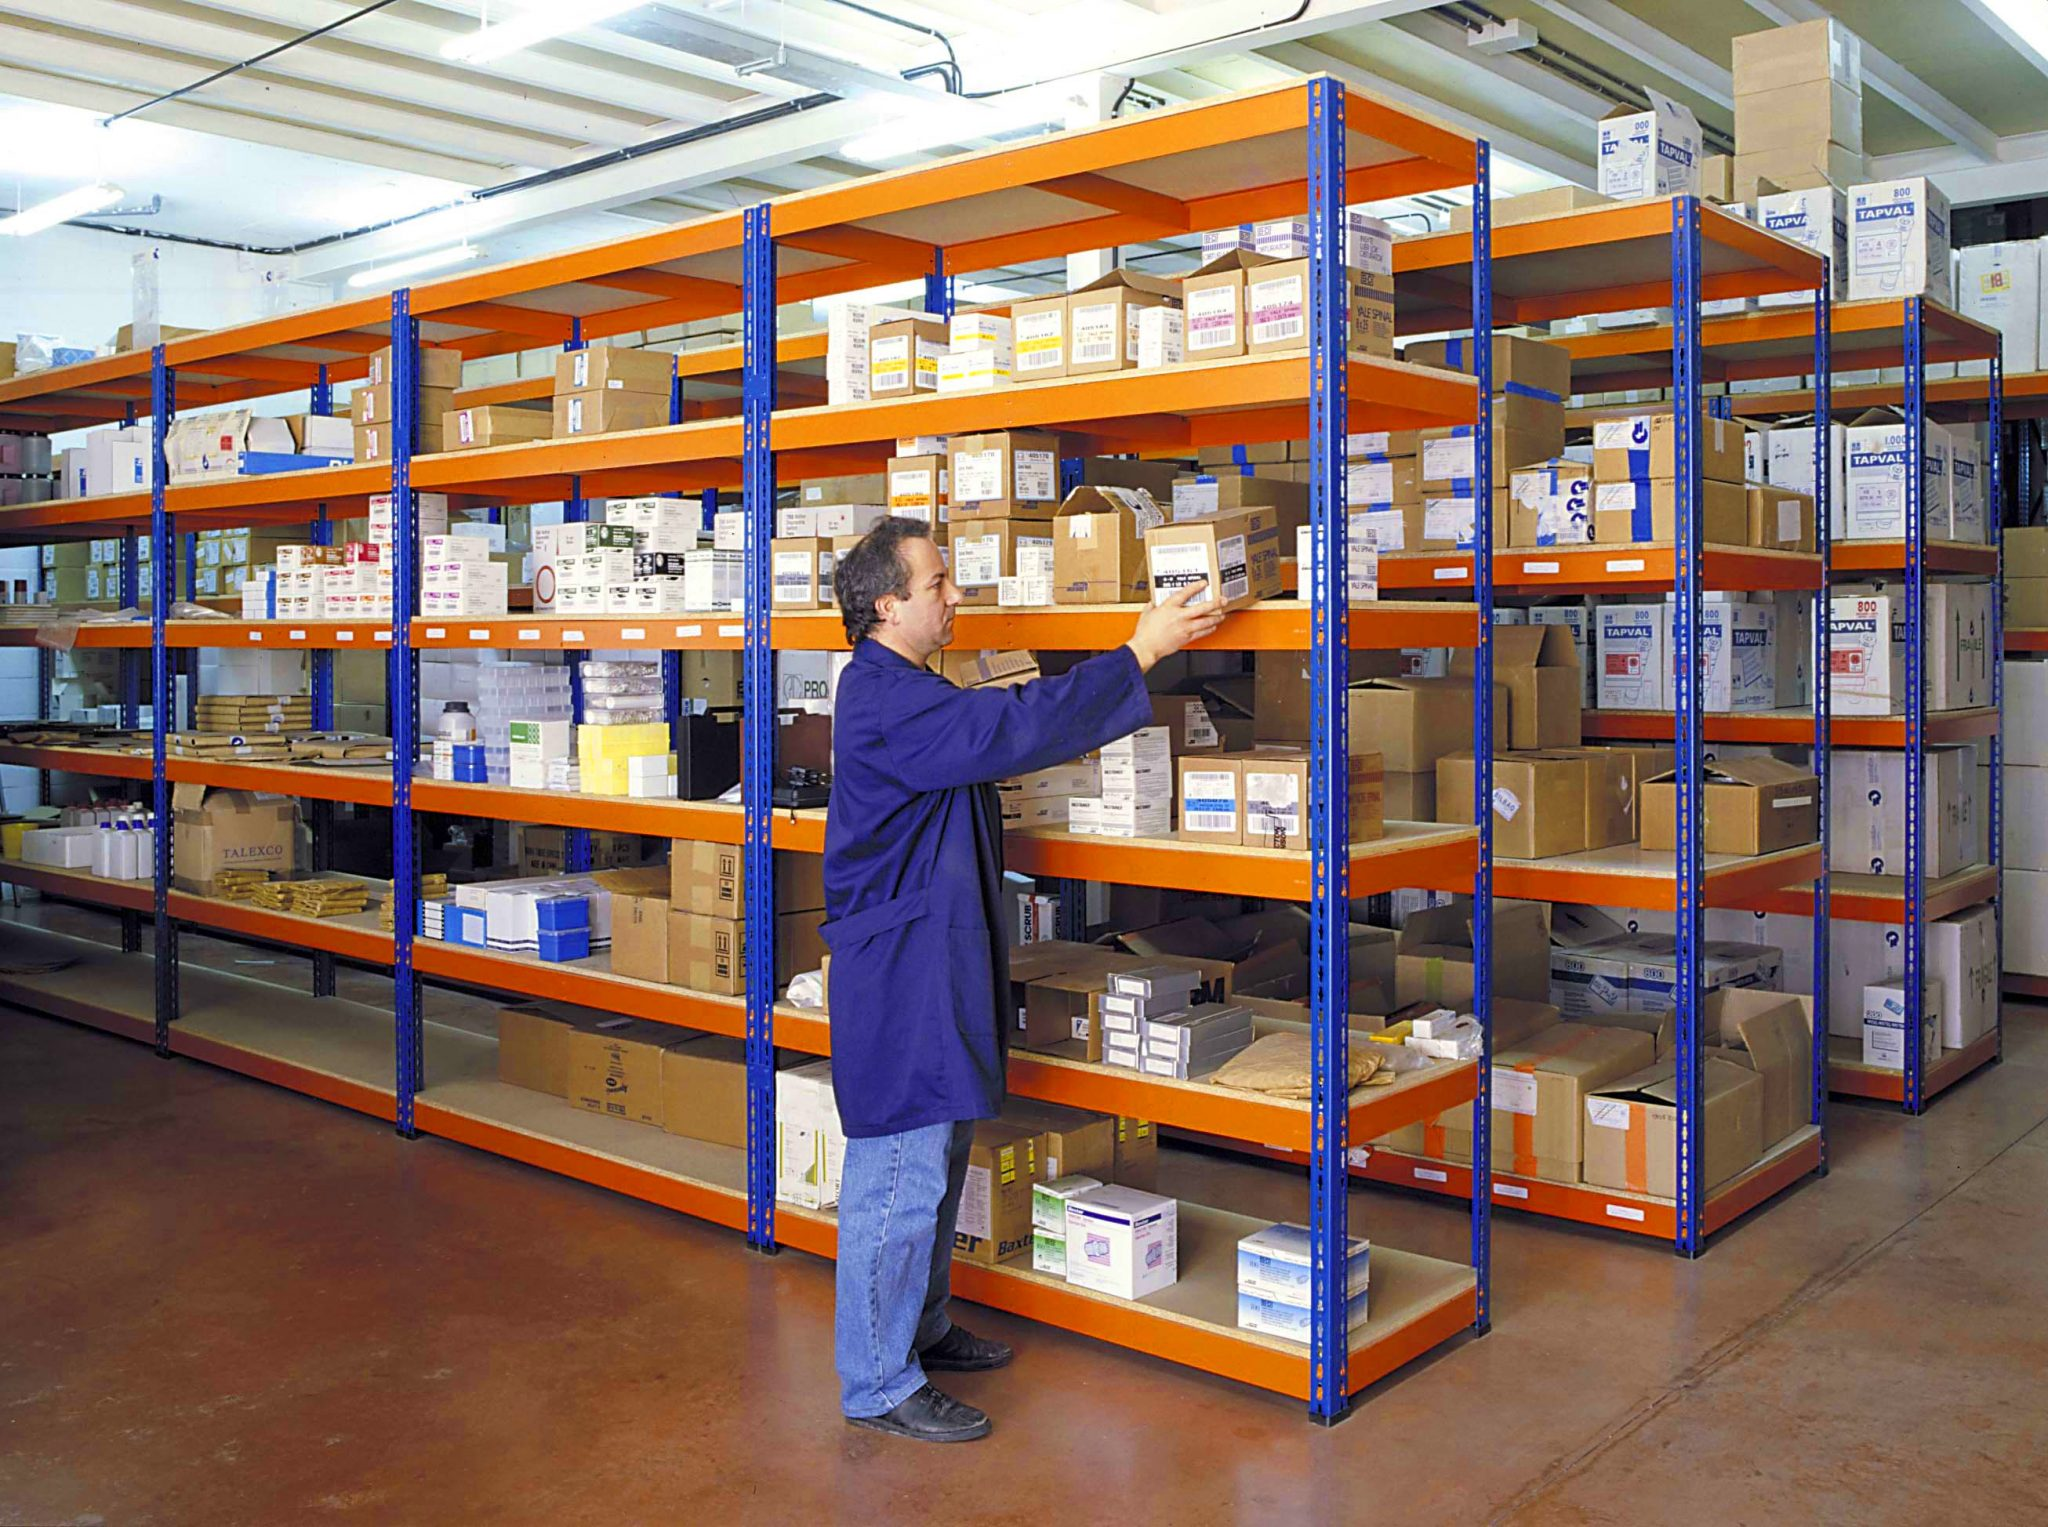 Gondola Shelving Pharmacy Shelving Warehouse Shelving Stockroom Shelving Home Garage Shelving. New and Used Store Fixtures • Items Arriving Daily. Reeves New and Used Store Fixtures remains the Carolinas largest selection of quality used and new shelving and store fixtures – since